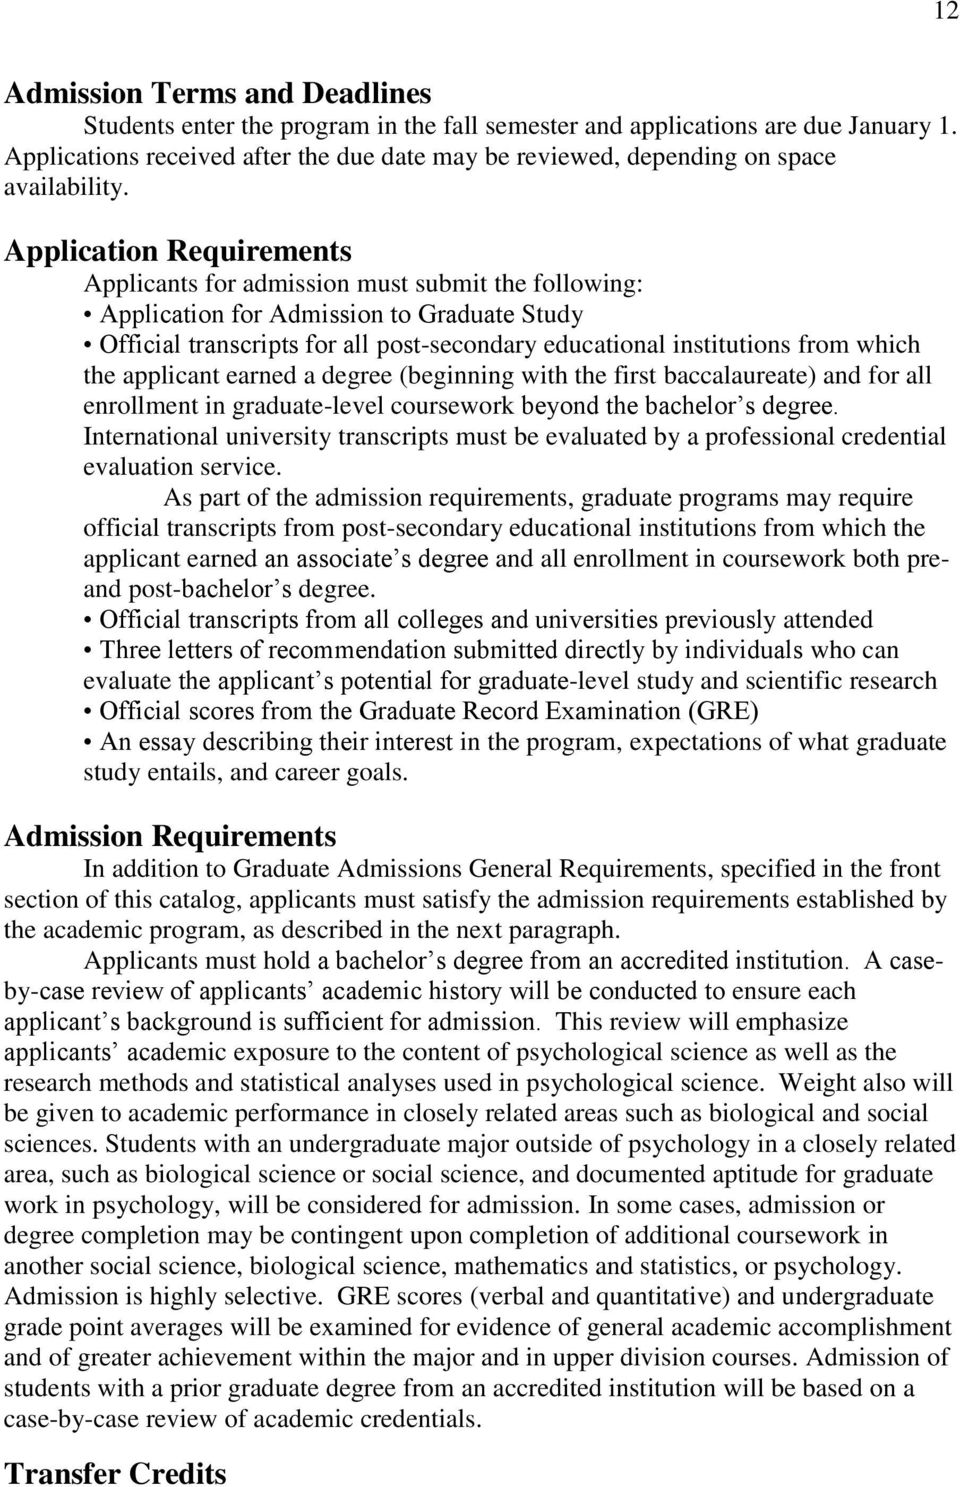 Application Requirements Applicants for admission must submit the following: Application for Admission to Graduate Study Official transcripts for all post-secondary educational institutions from